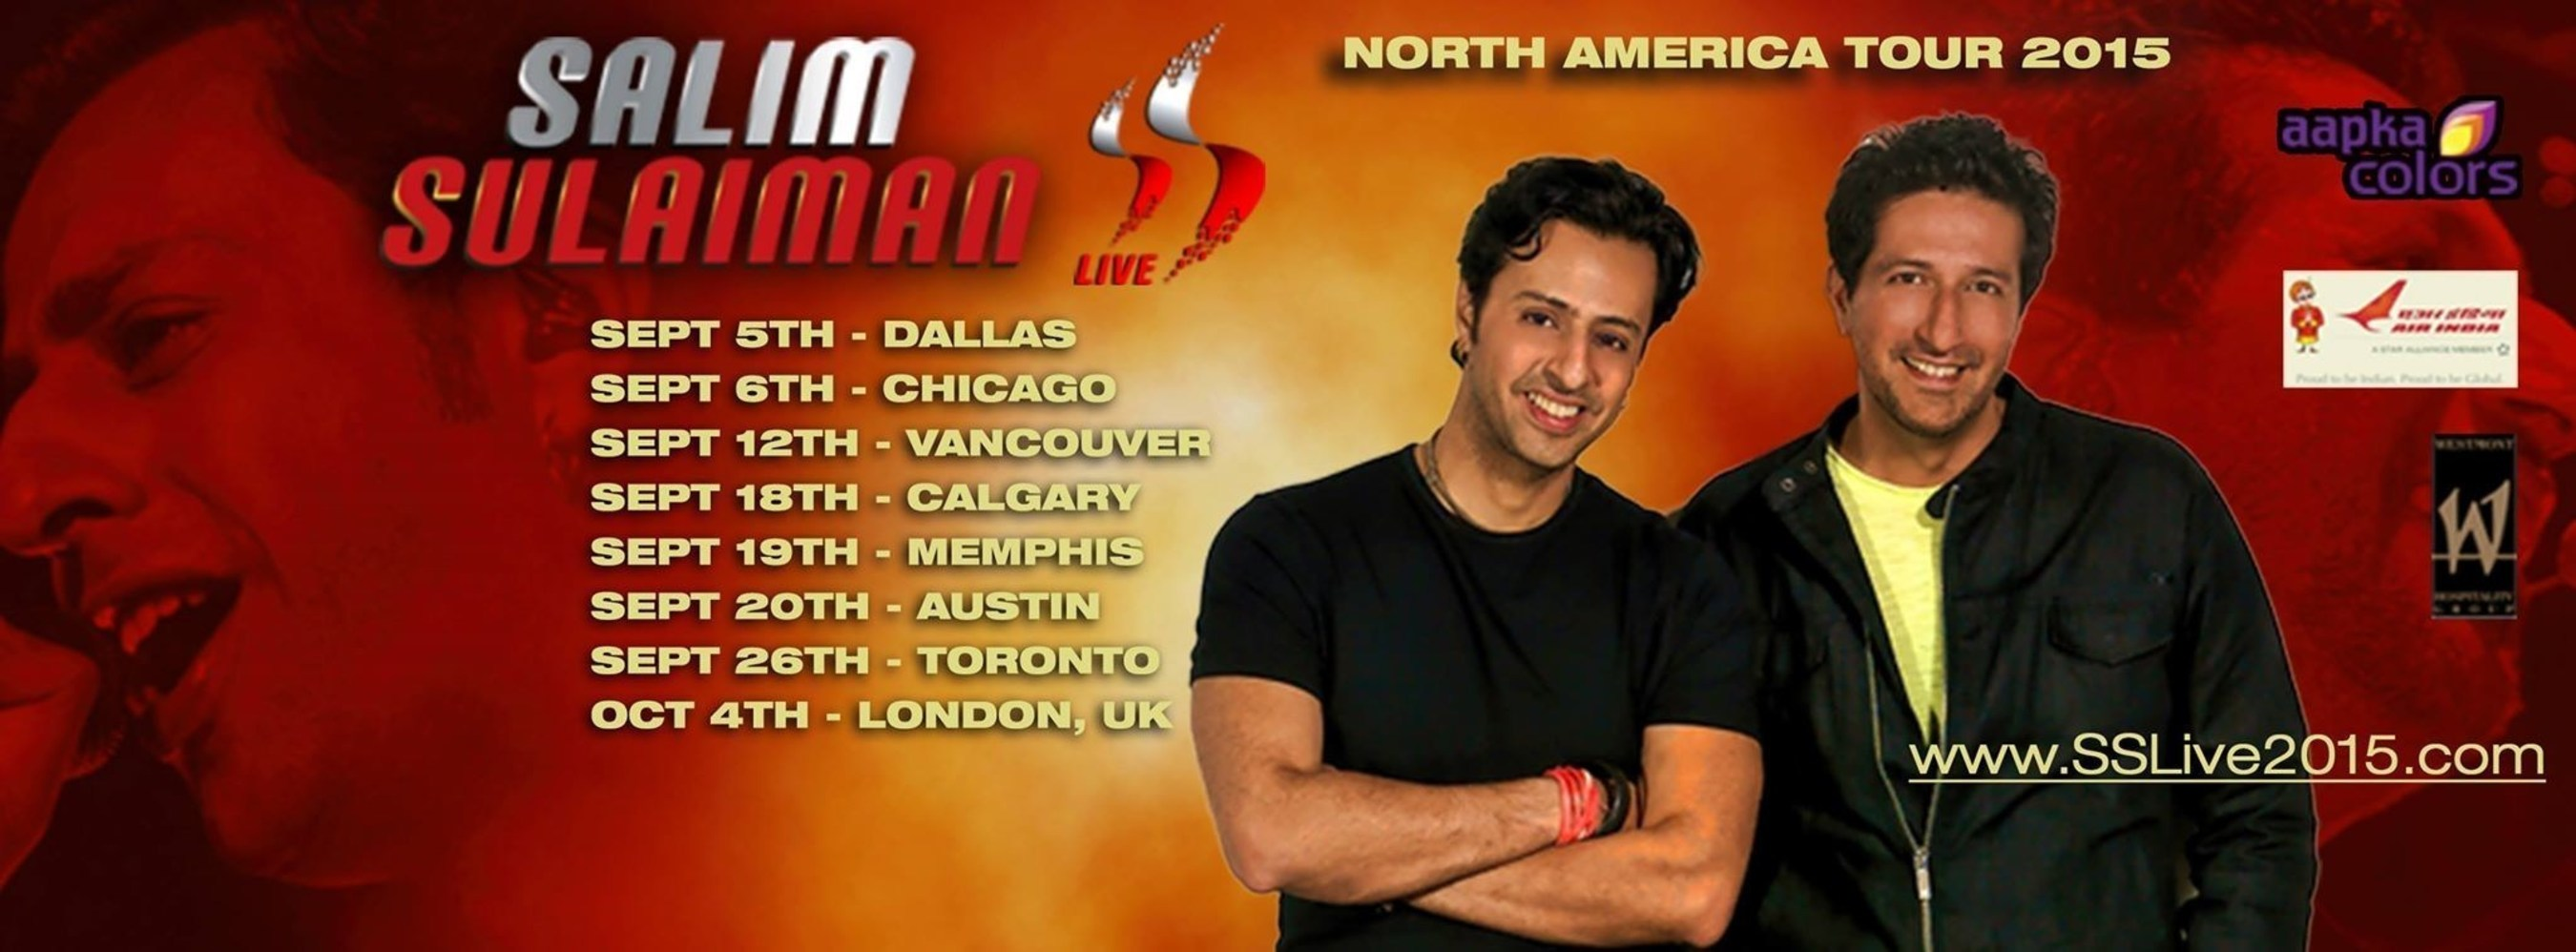 Air India announced as official airline of the Salim Sulaiman North American Tour 2015